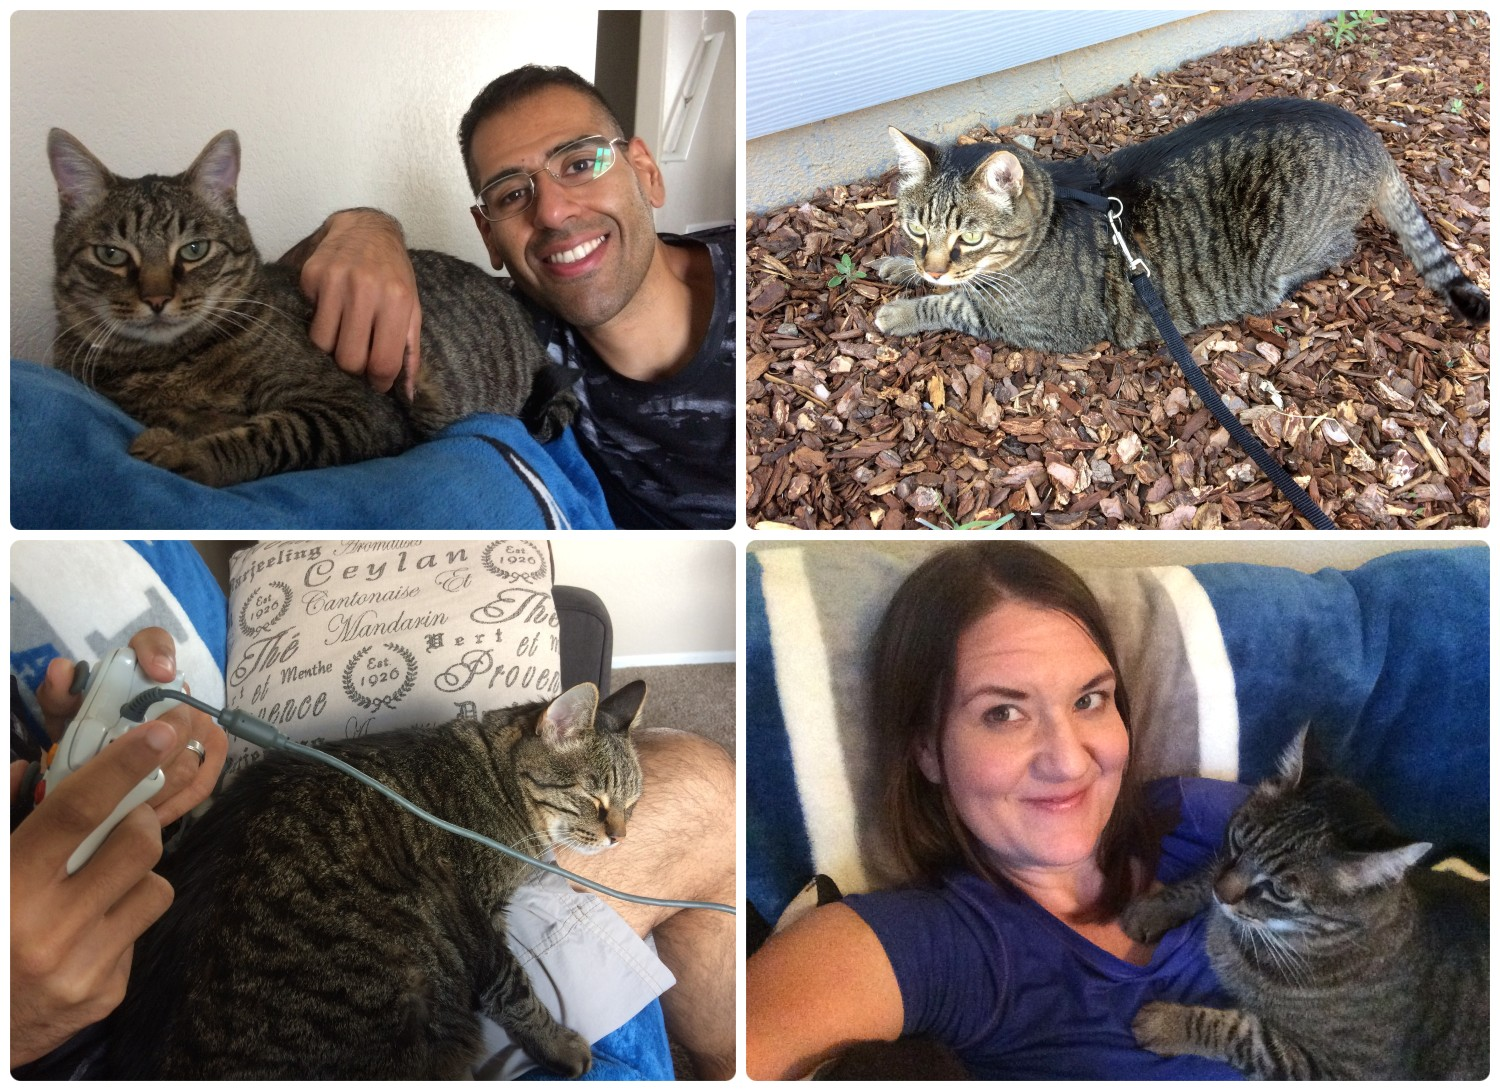 Cupid at our Greeley, Colorado House Sitting Job: He loved to cuddle, even when we were playing video games! ... On the other hand, put a leash on him and he'd just fall to the ground!